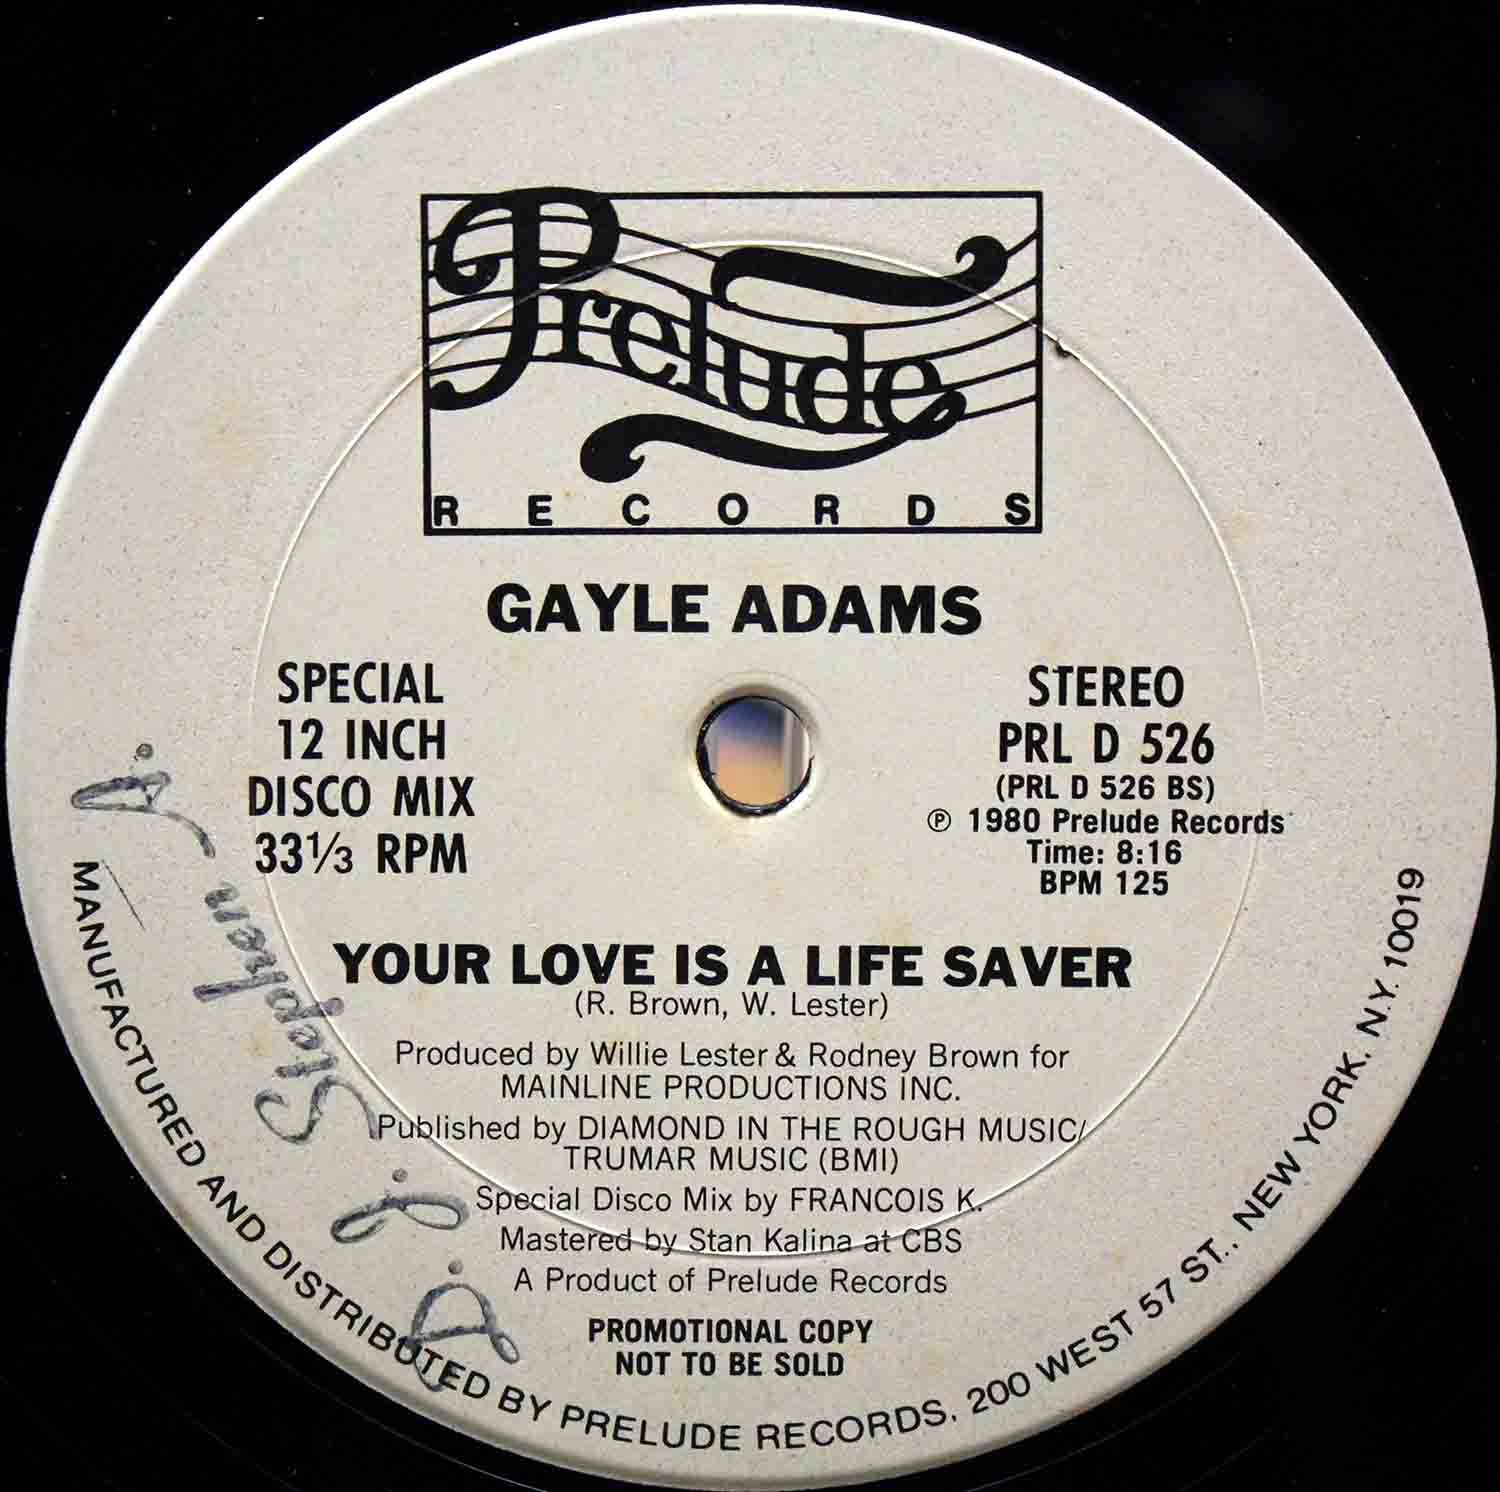 Gayle Adams - Your Love Is A Life Saver 02